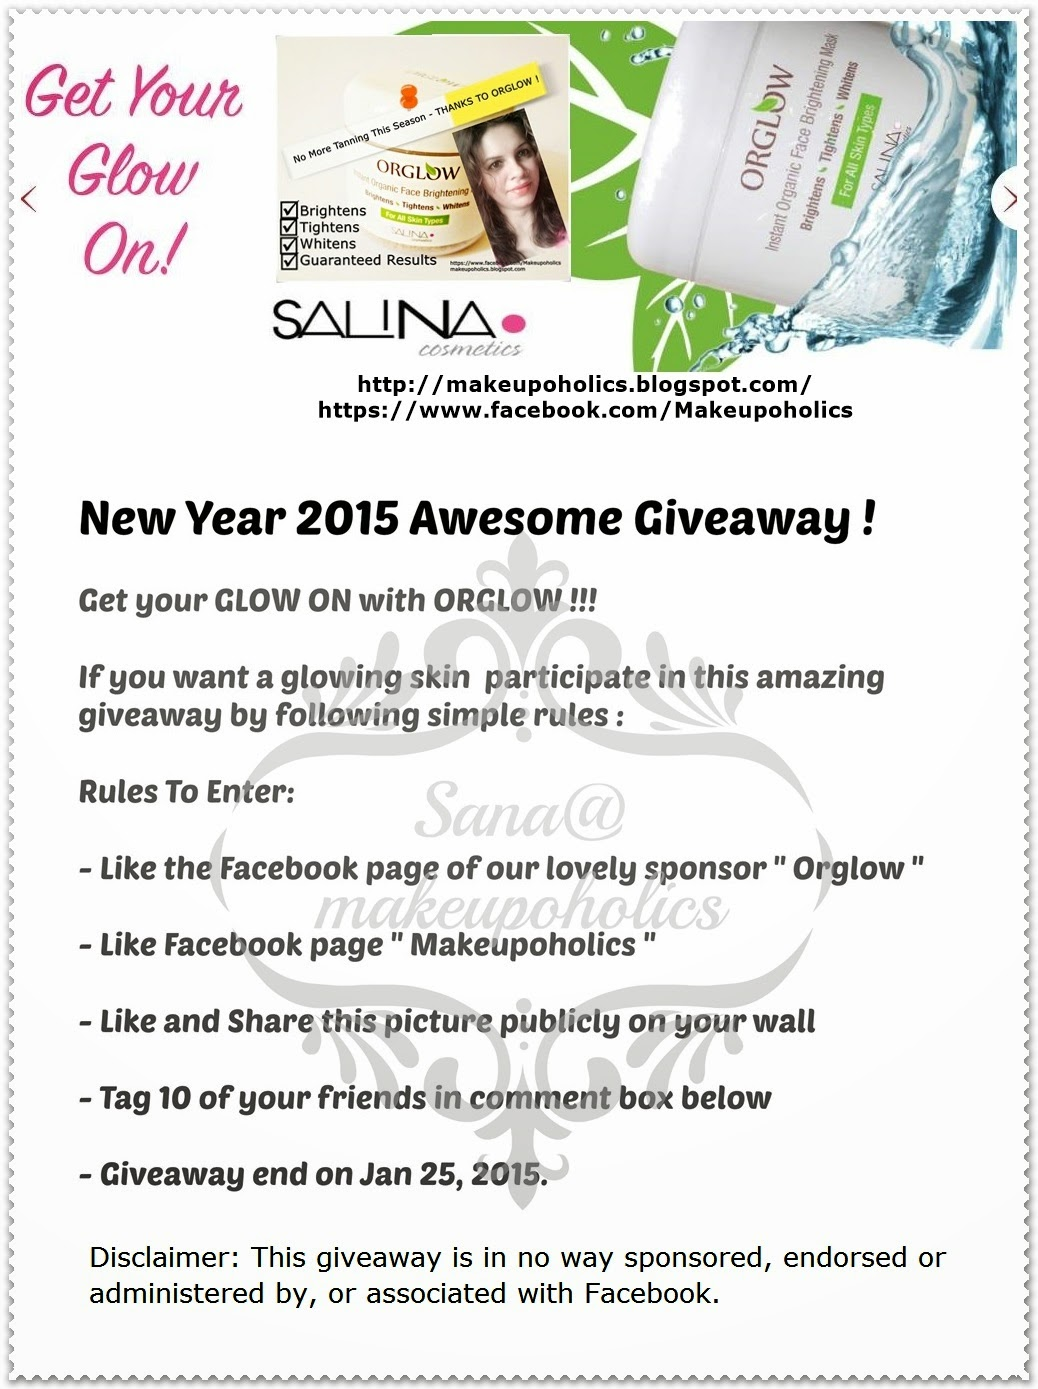 New Year 2015 Awesome Giveaway